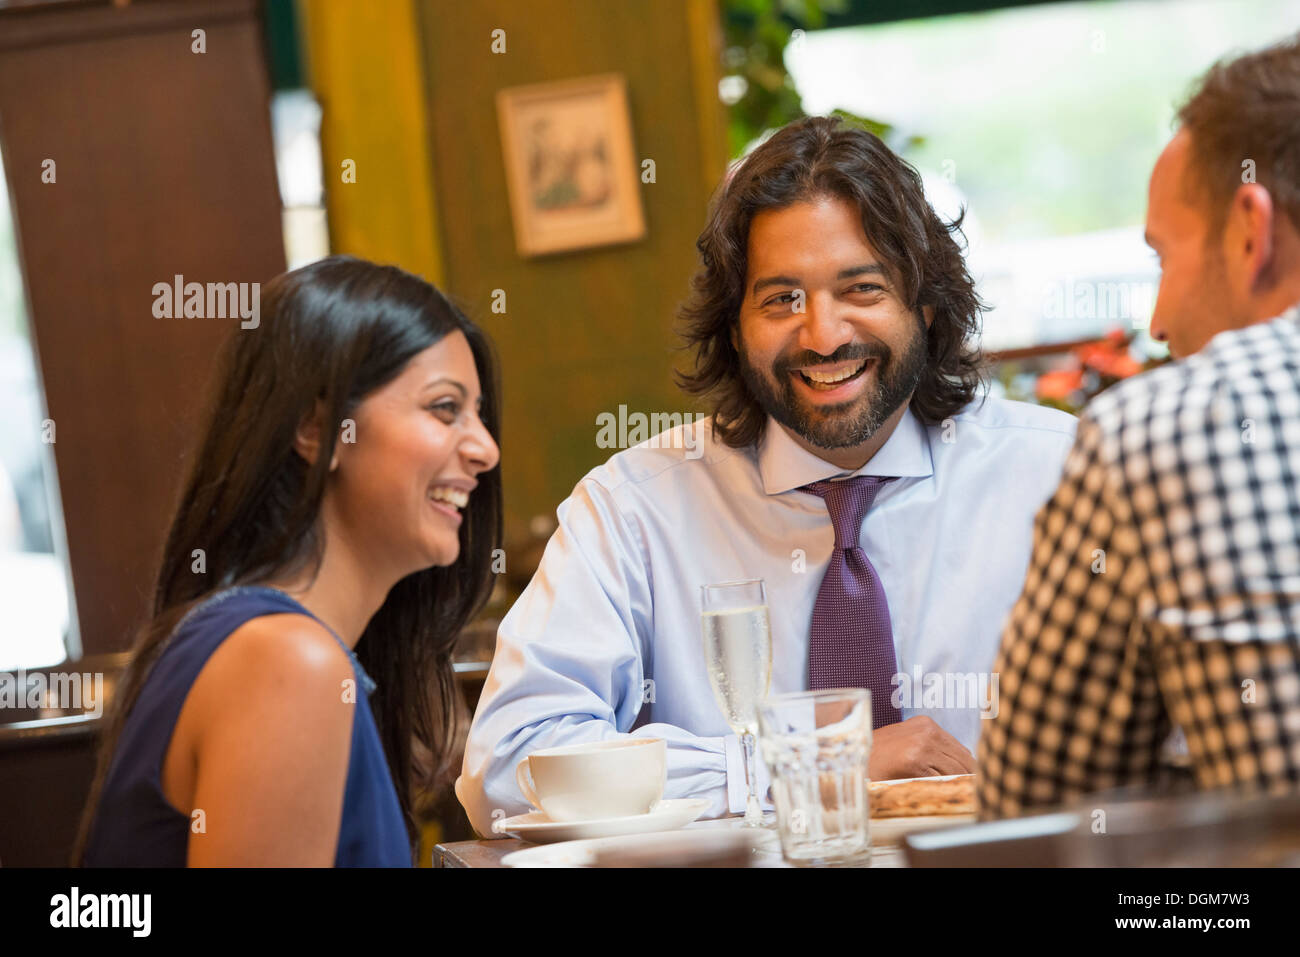 Business people. Three people seated around a table in a bar or cafe, having drinks. - Stock Image